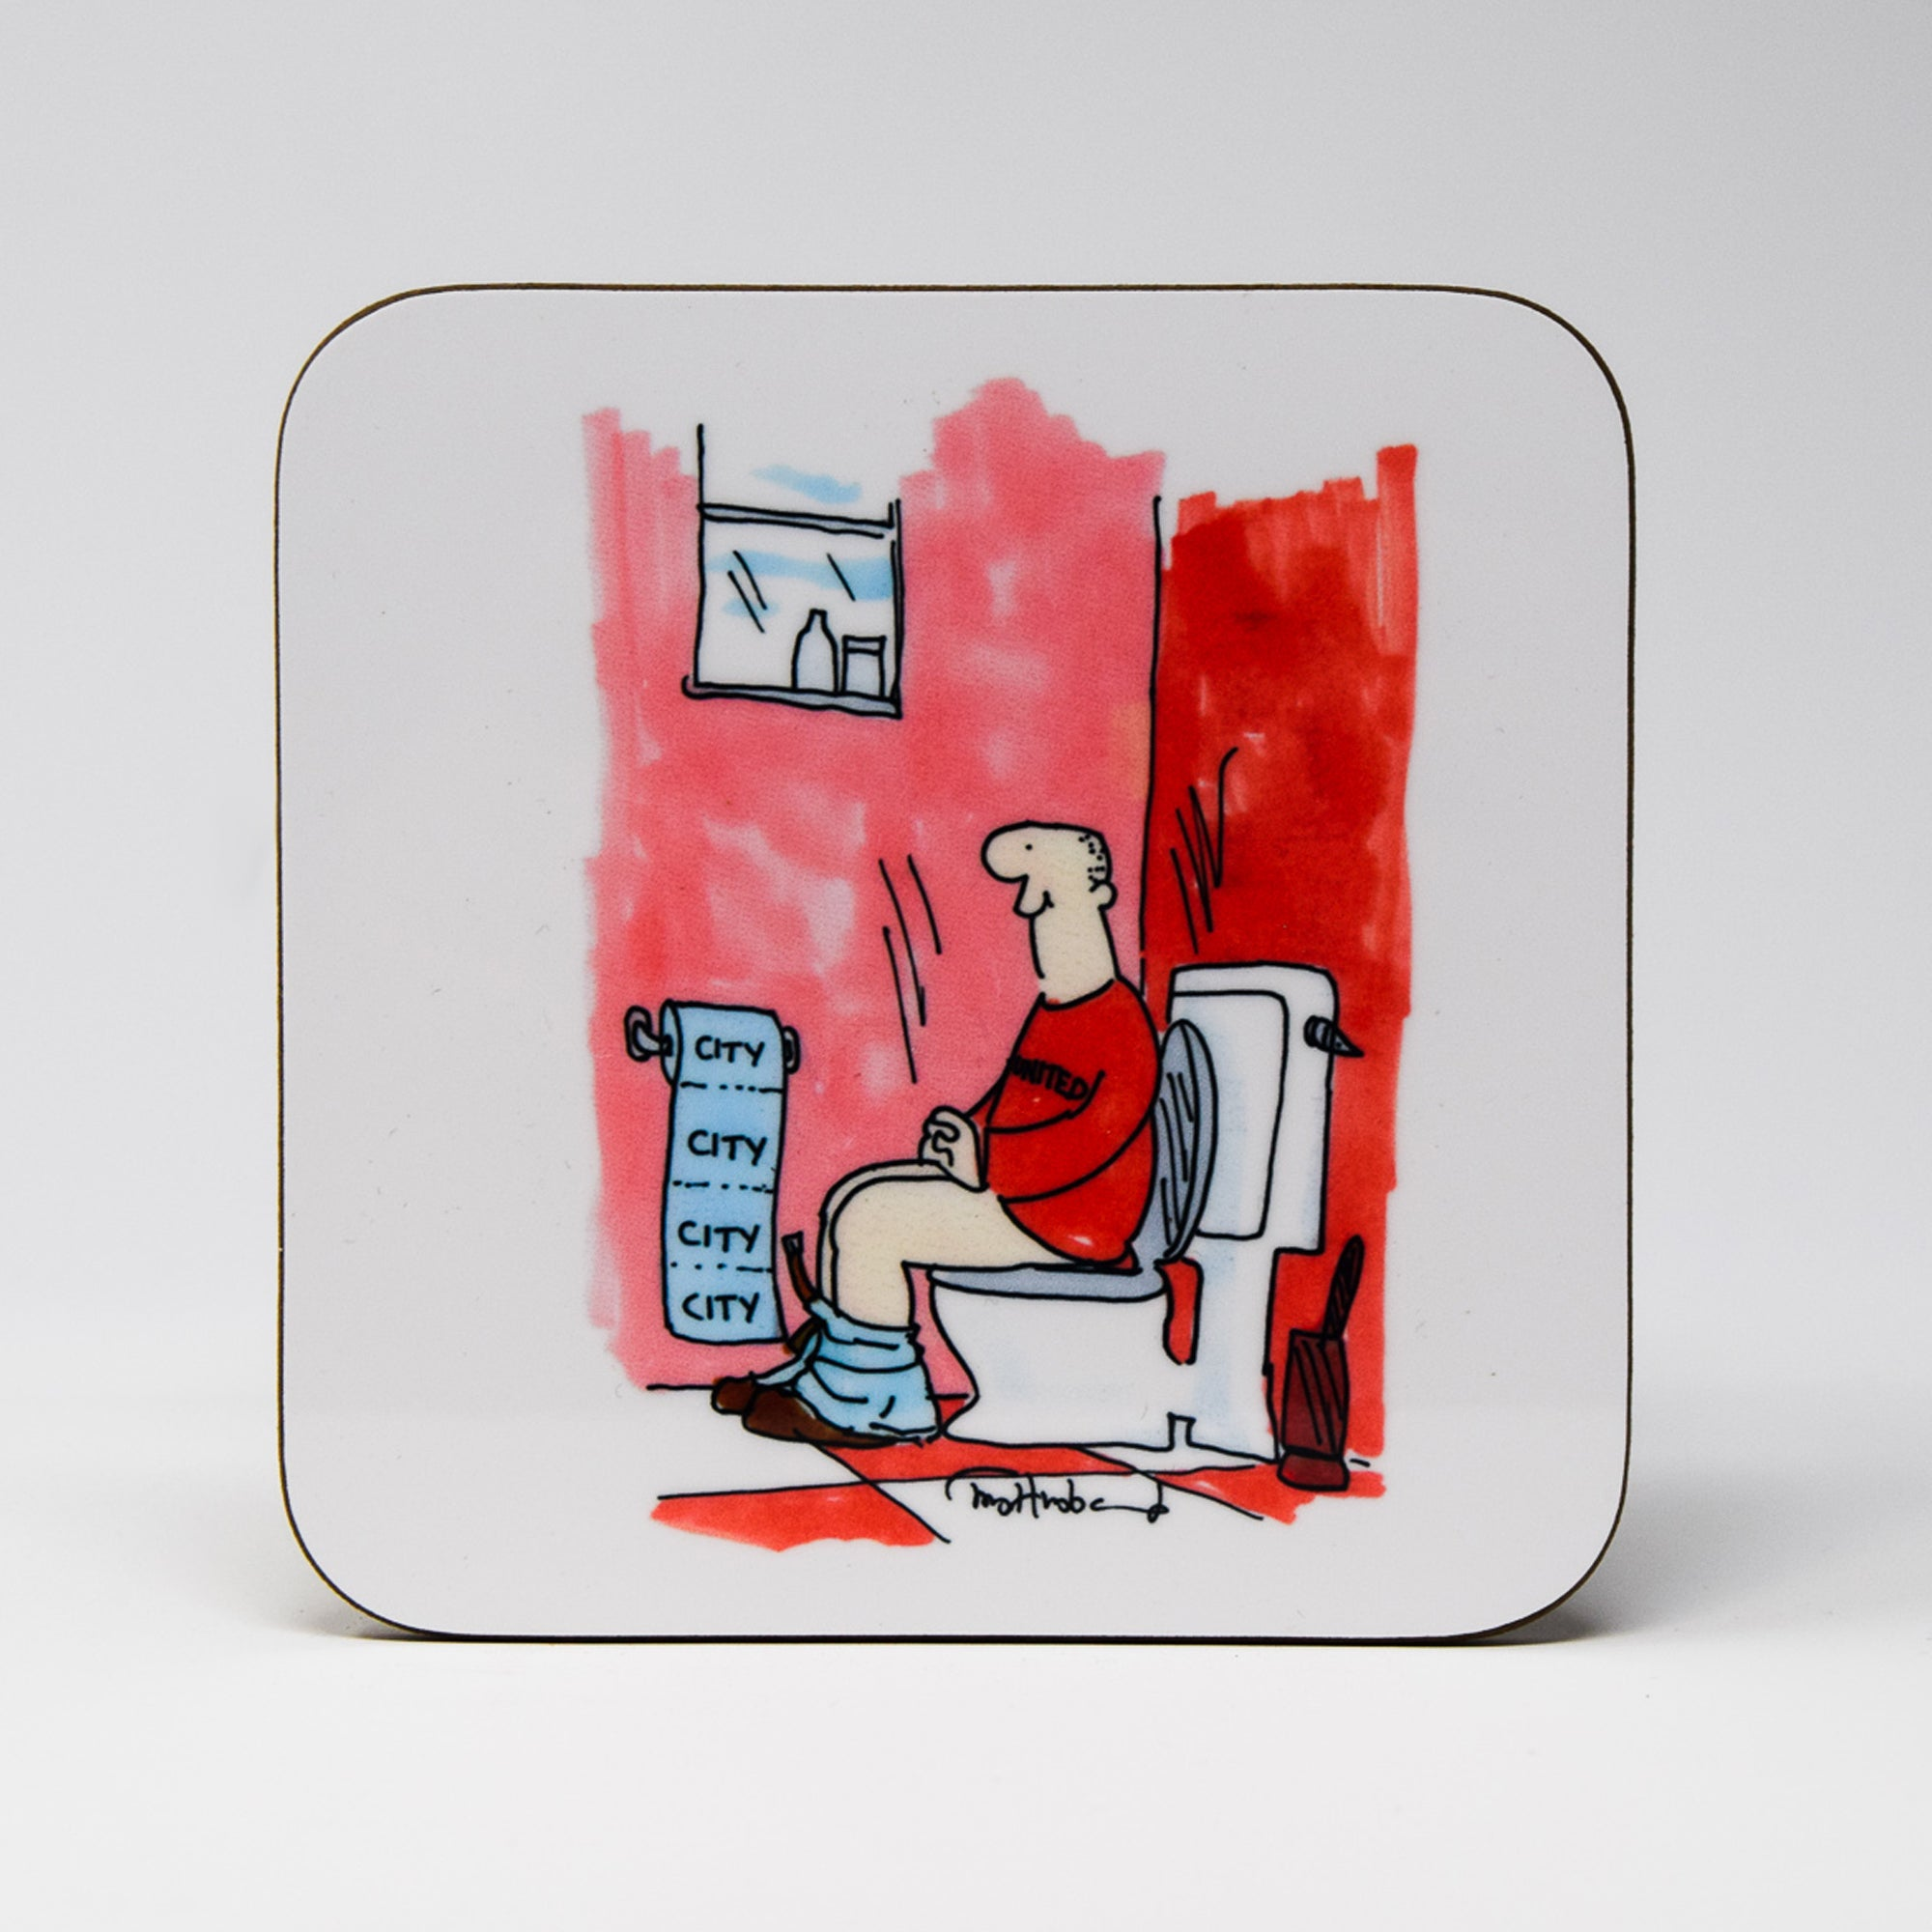 Manchester City Toilet Paper Coaster by Tony Husband